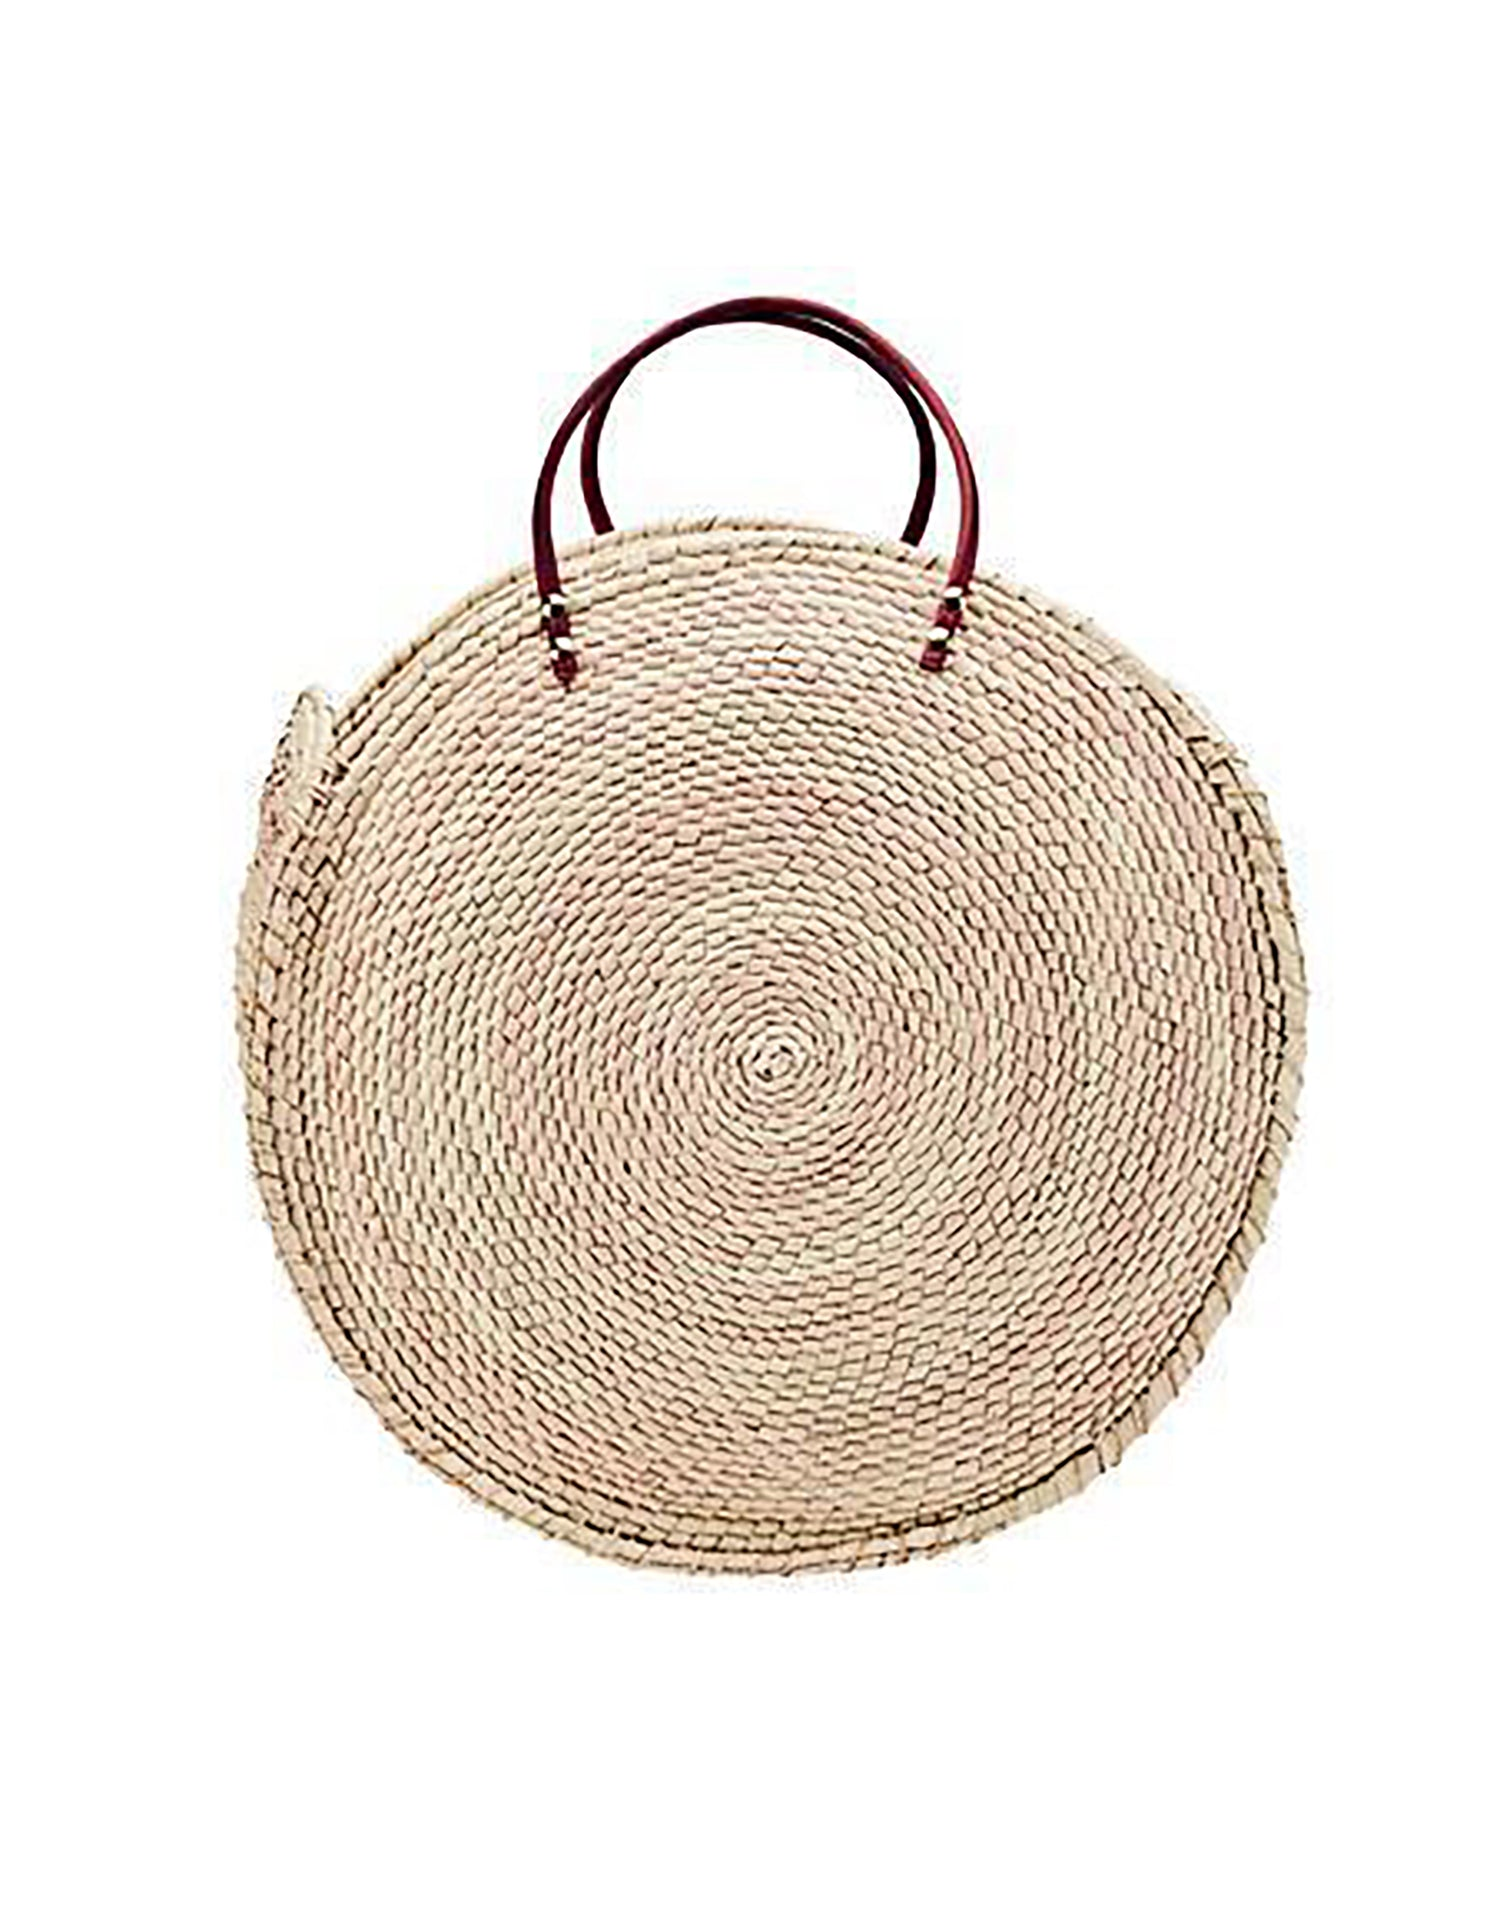 Palm Straw Crochet Tote Bag in Natural - product view